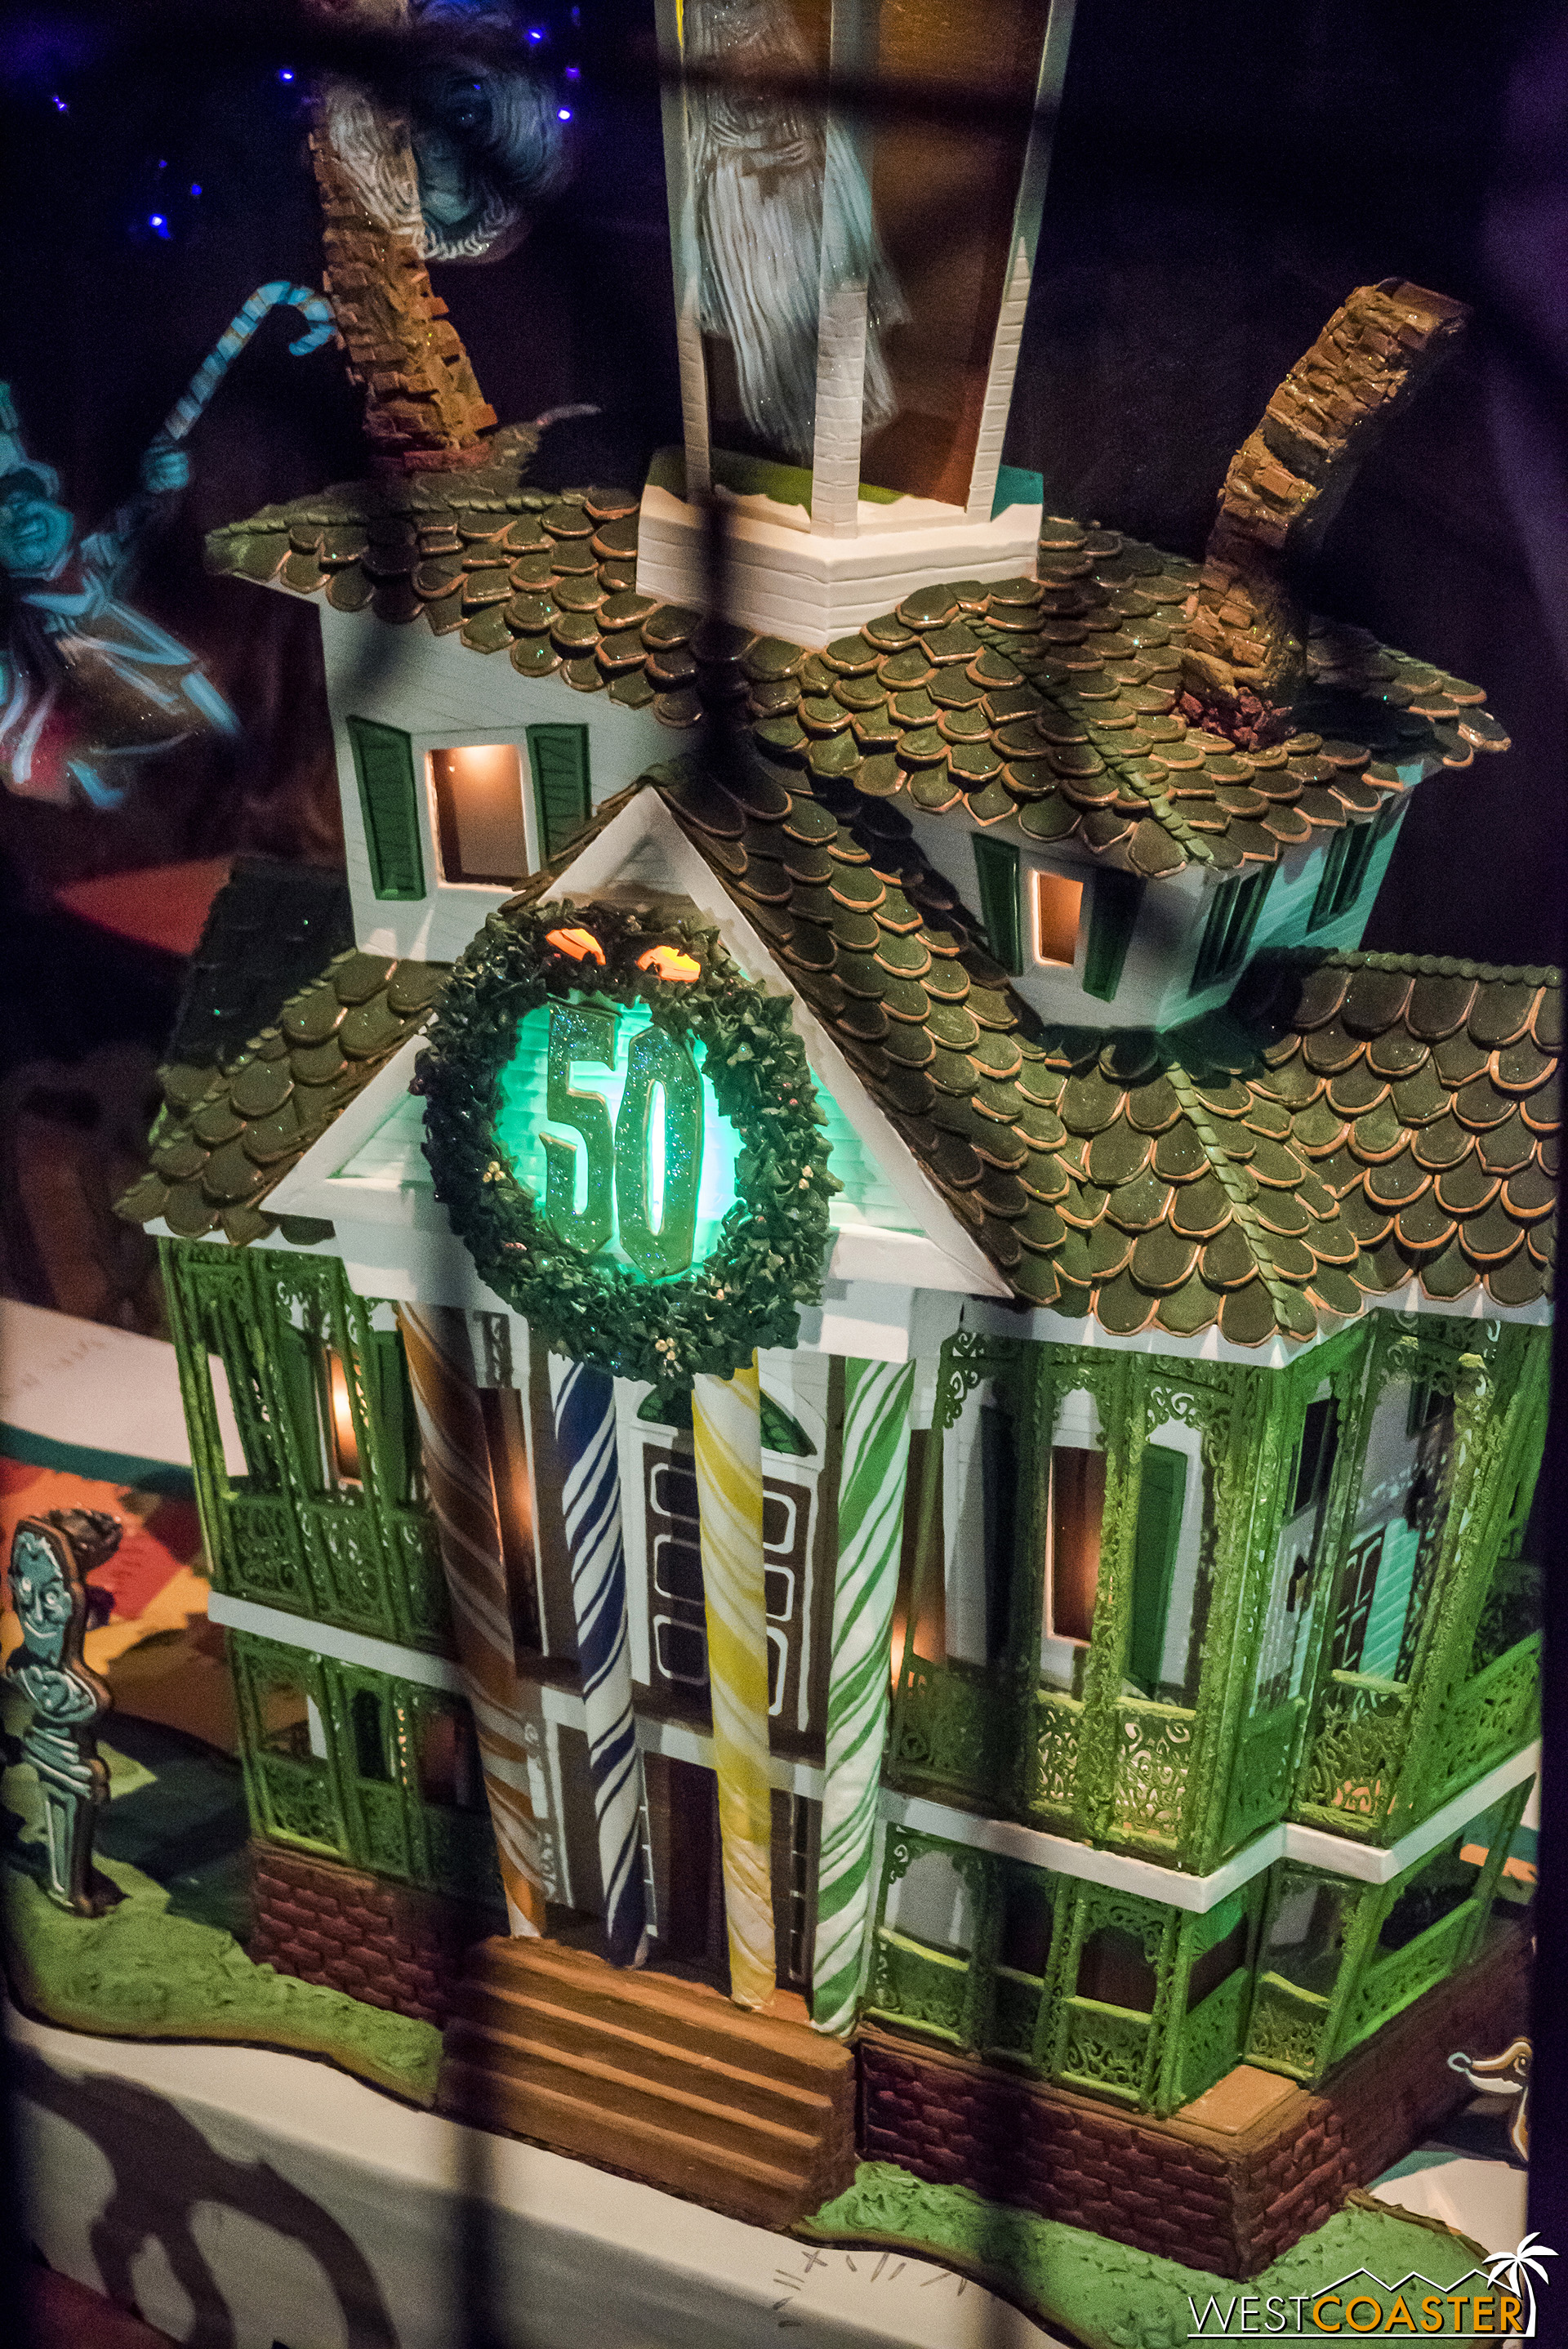 And here it is, the Haunted Mansion gingerbread house!